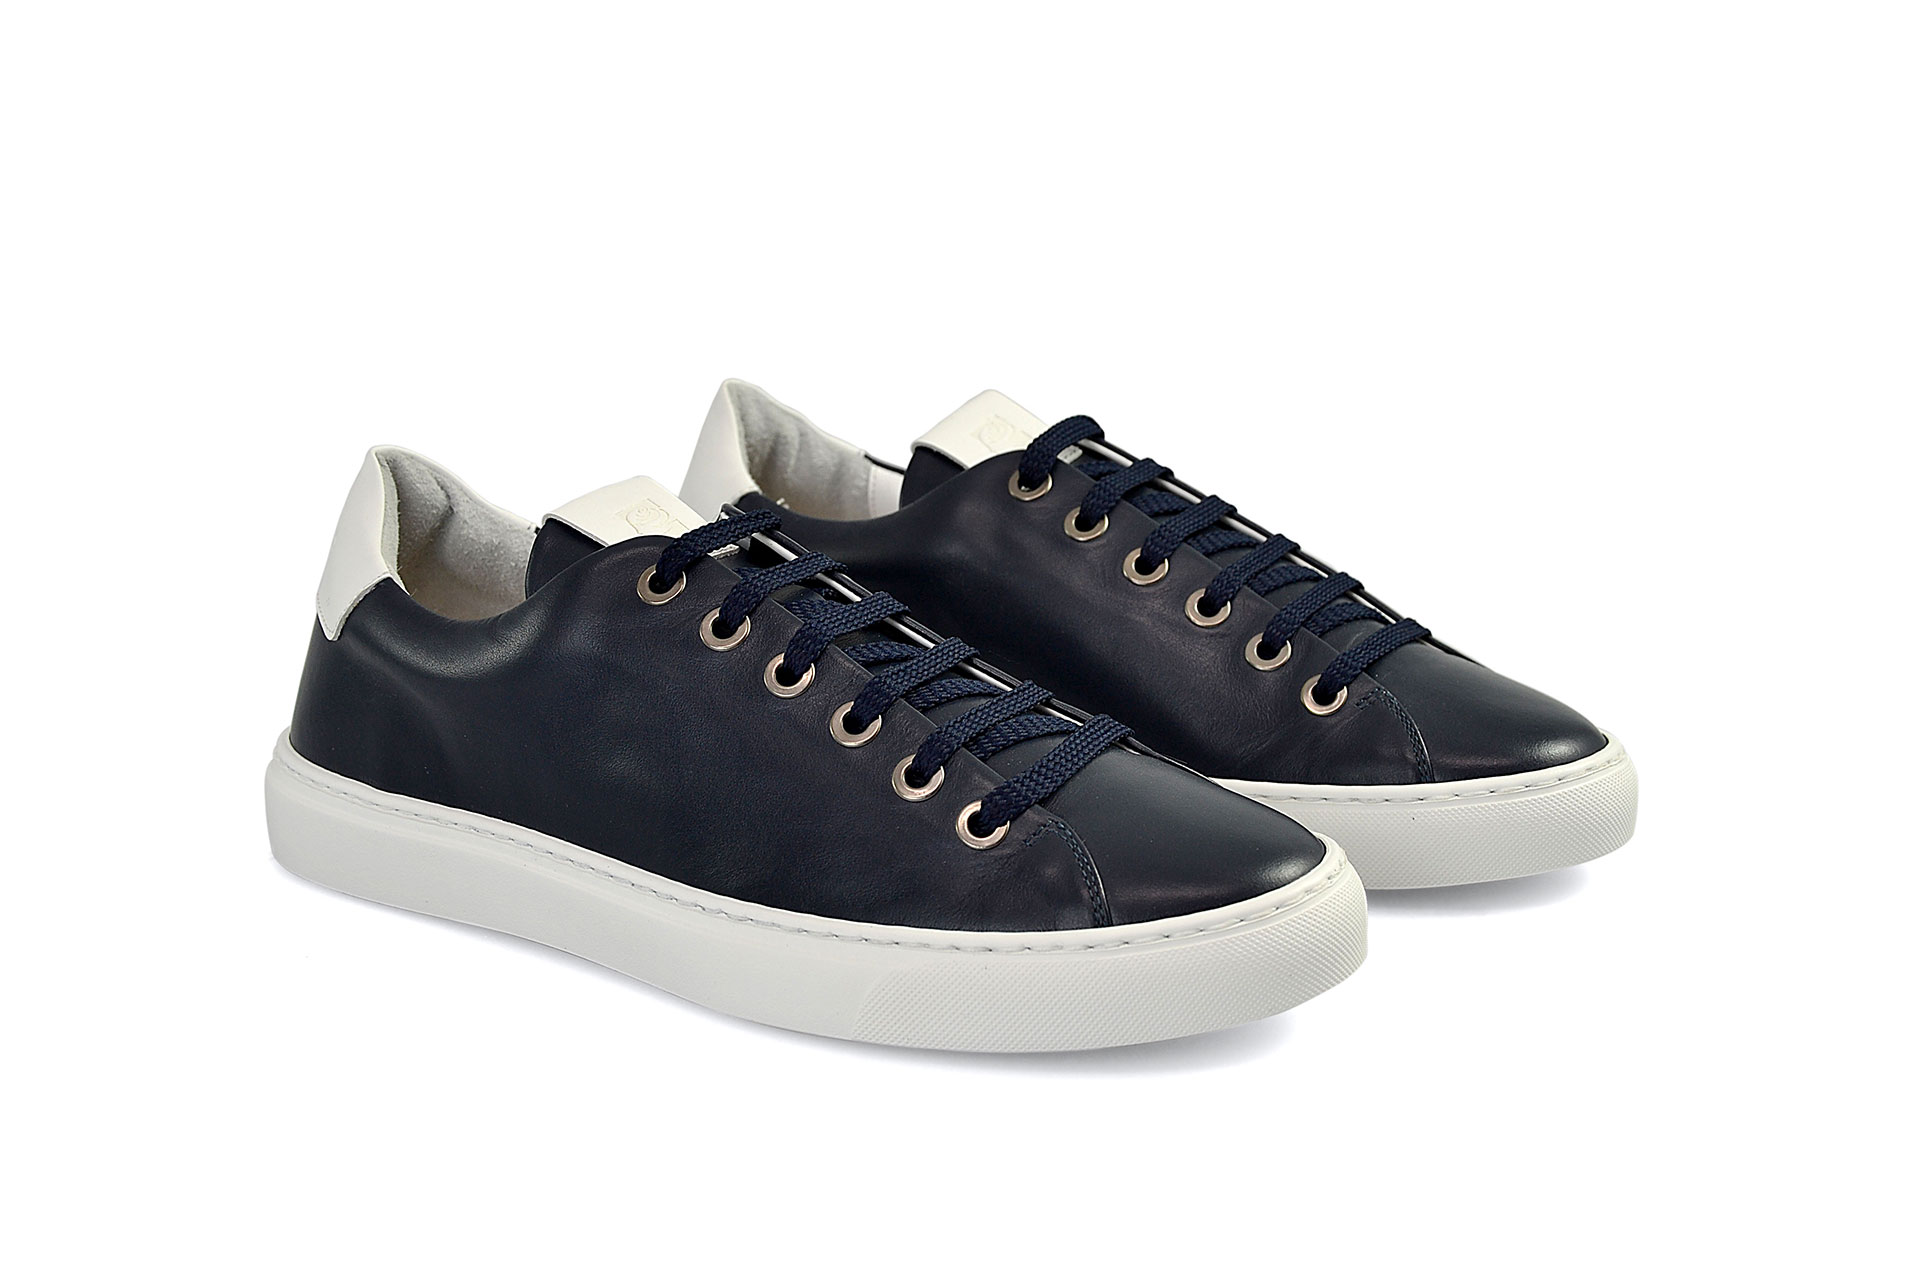 SHOES FIORANGELO MAN SS2021 ART. 75801 SNEAKERS VITELLO BLUE VITELLO BIANCO WHITE